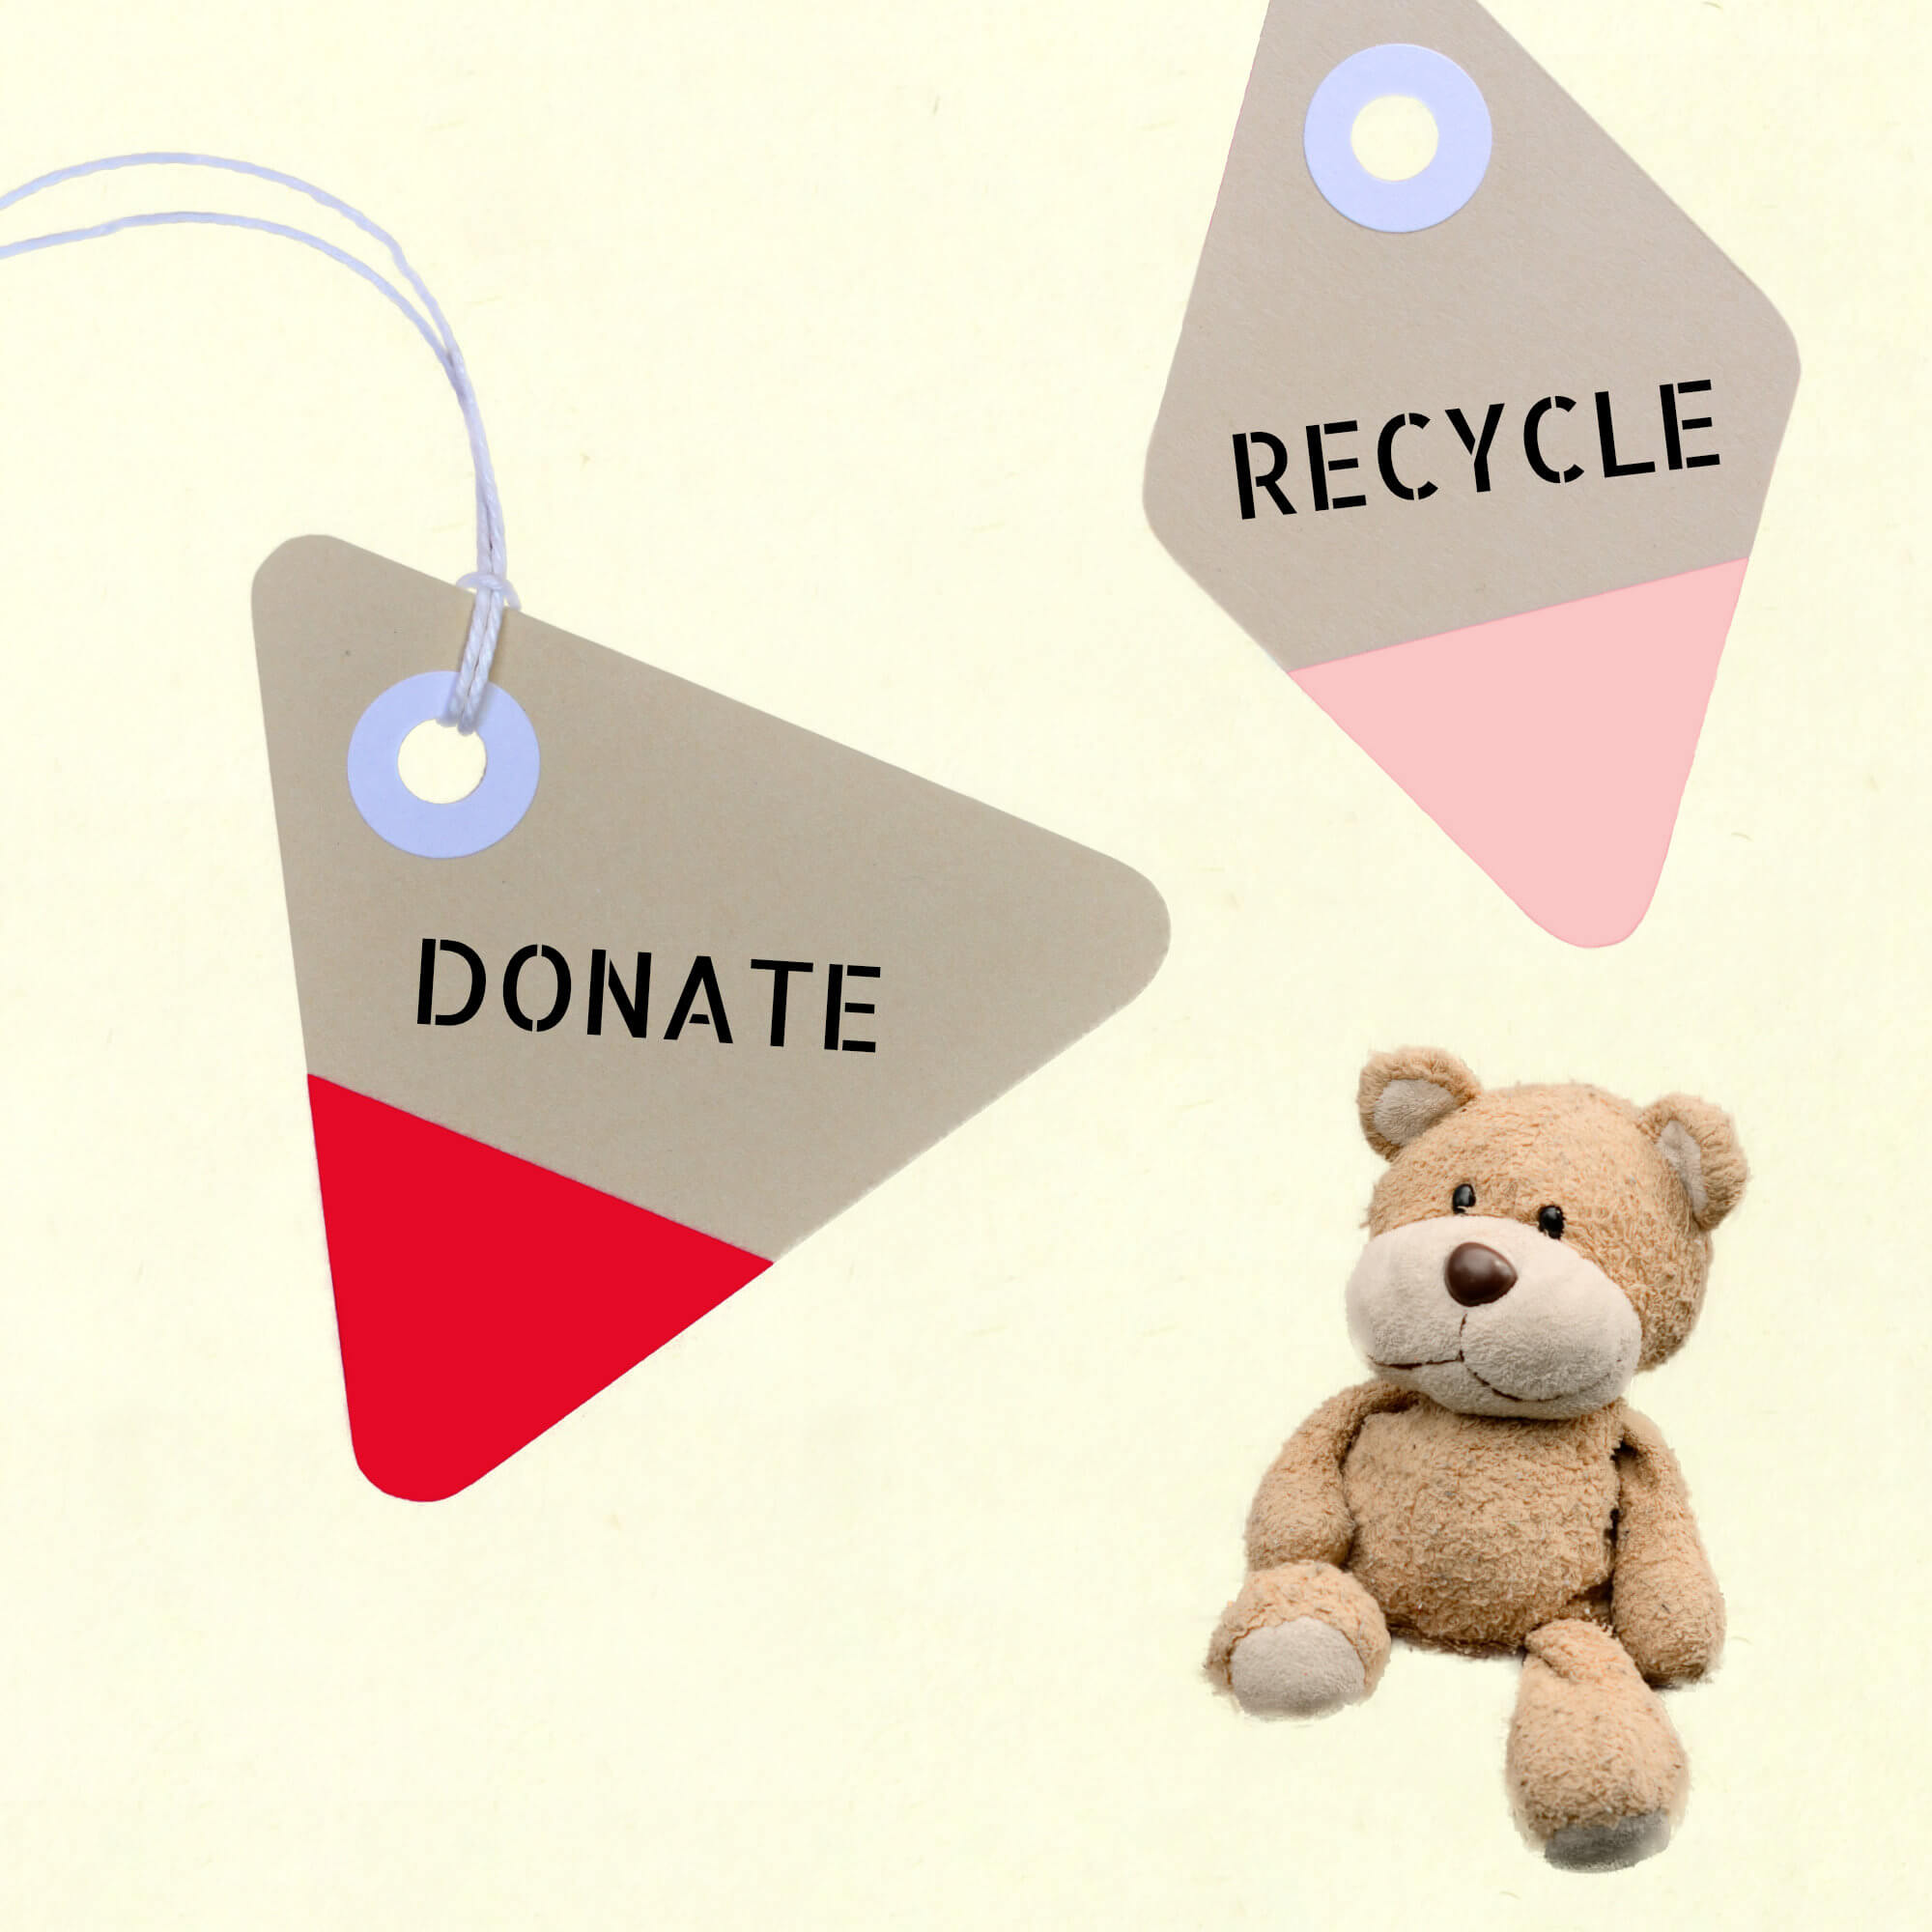 Responsible Discarding Can Get Tricky When It Comes to Sentimental Items. Like This Teddy, Donate Unwanted Items When You Can